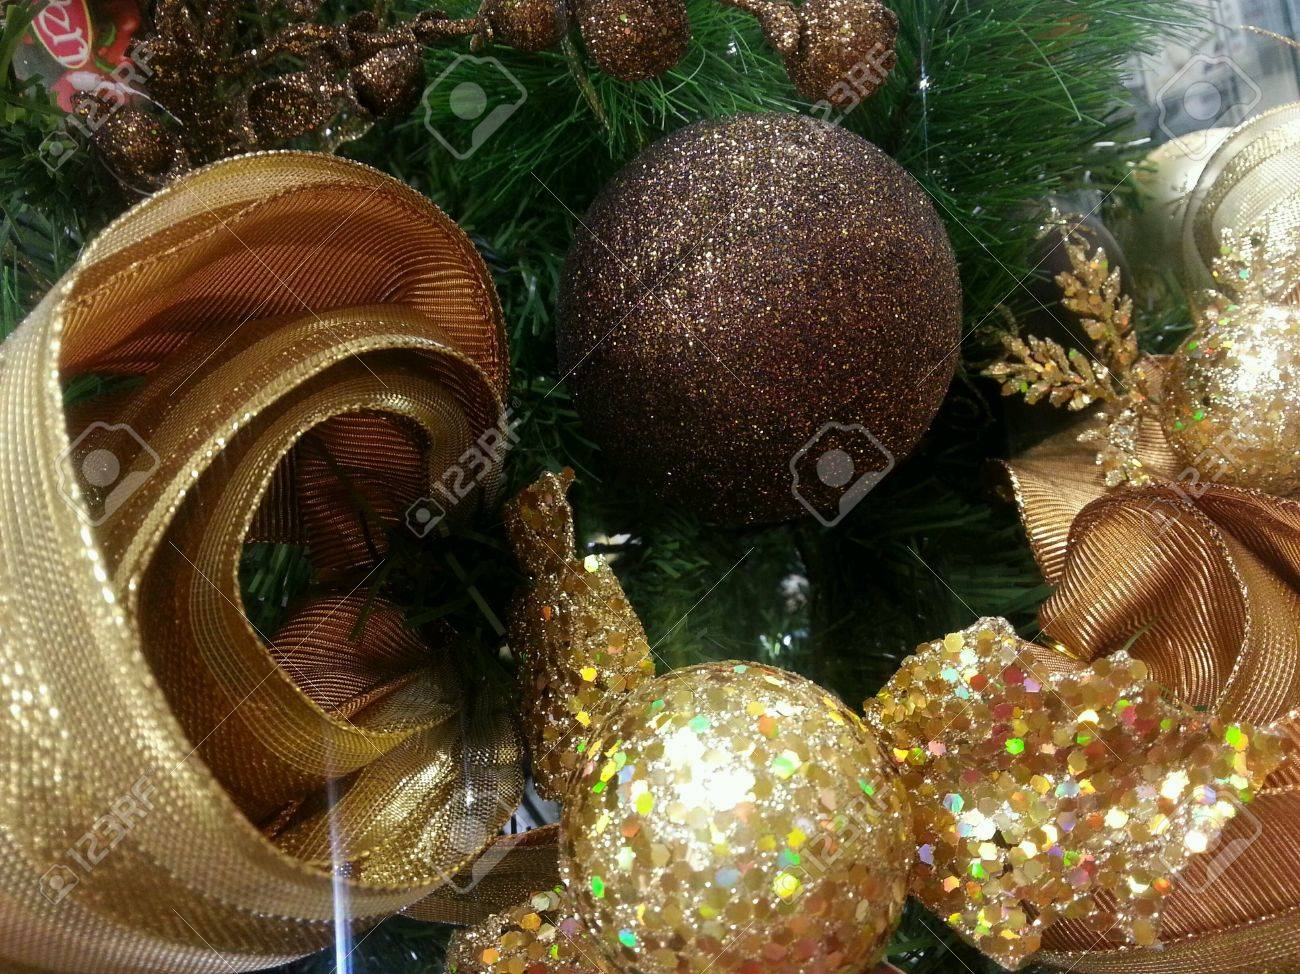 Gold And Brown Christmas Ornaments Decorations Stock Photo ...